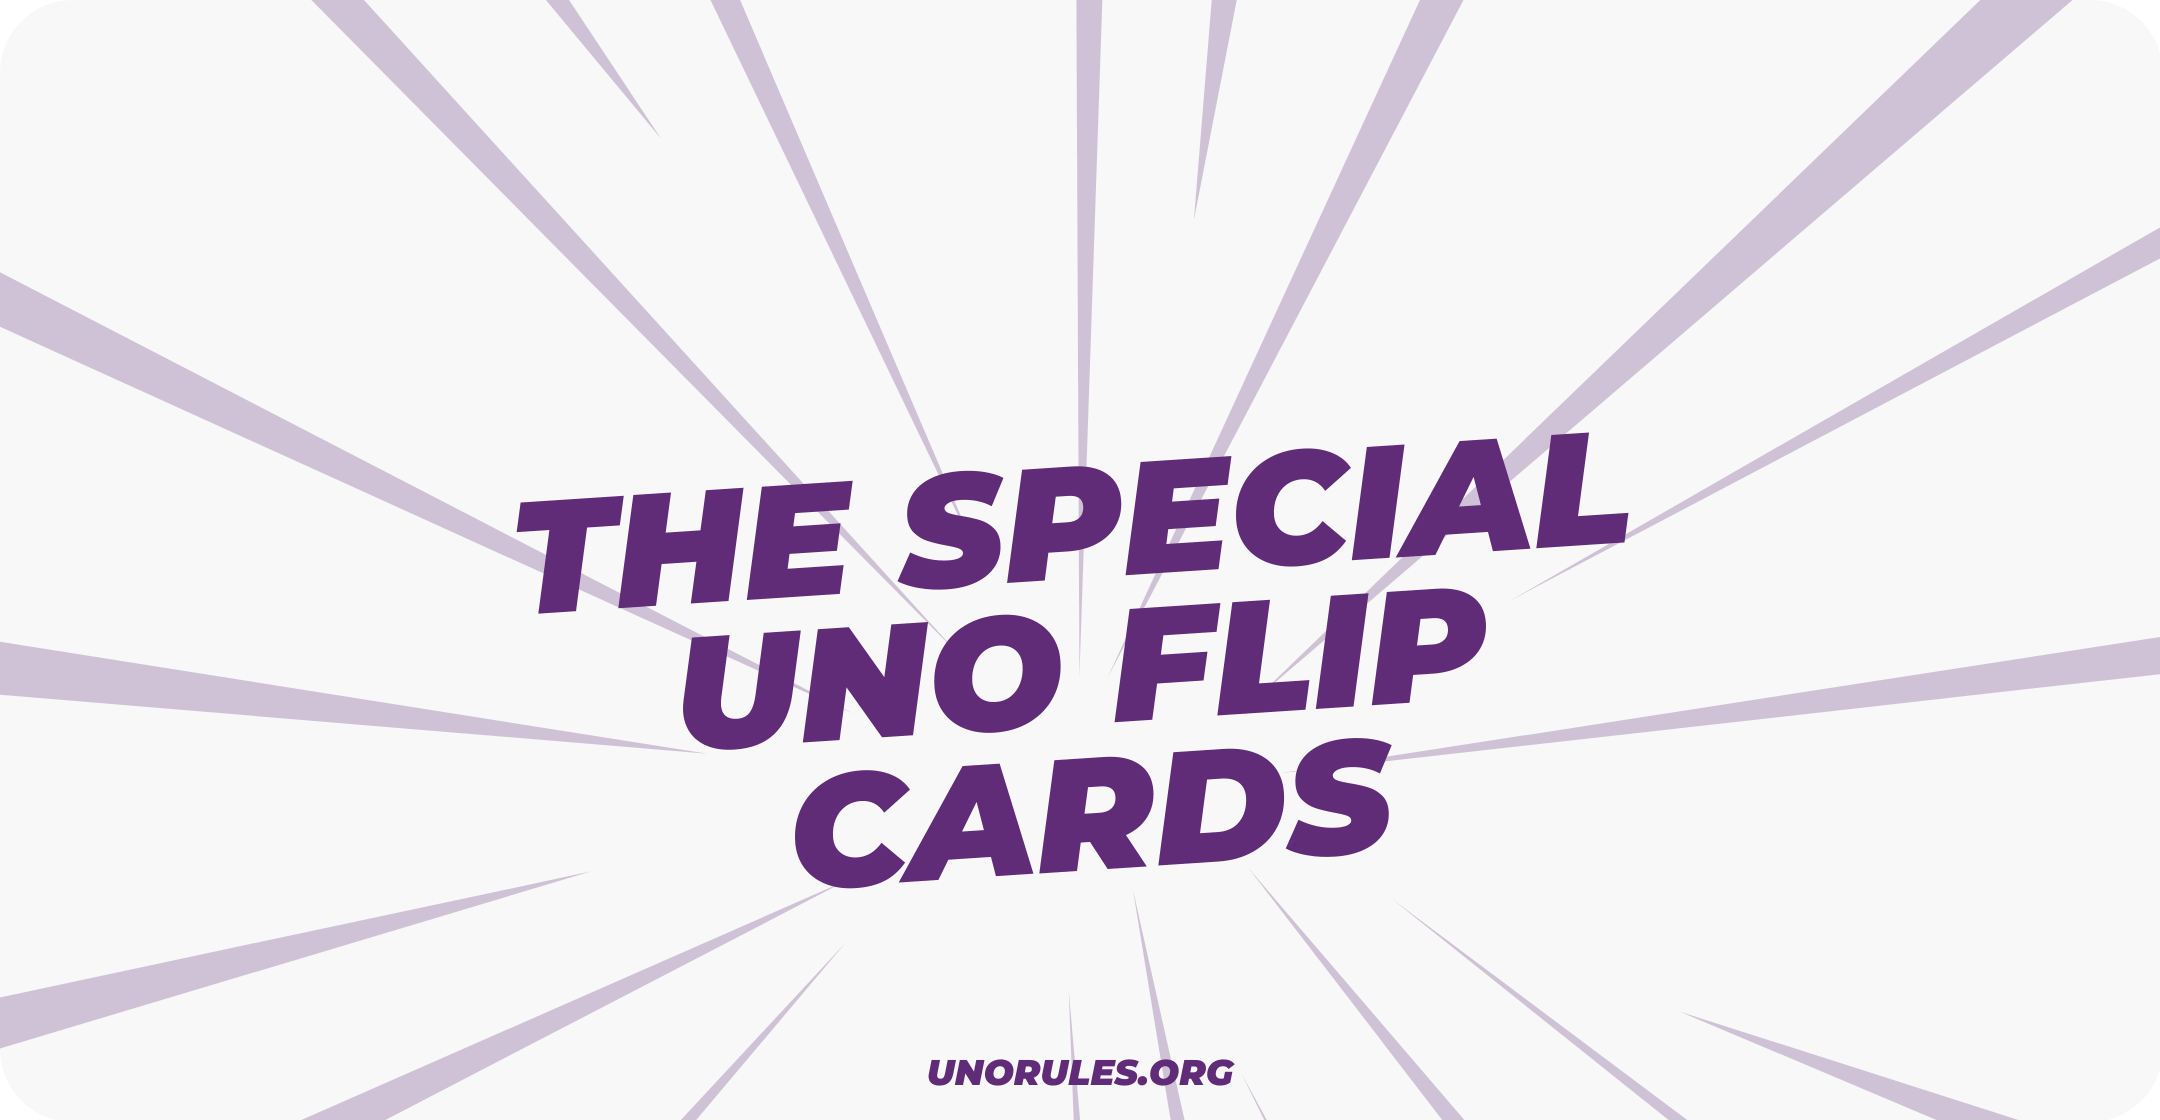 The special uno flip cards unorules.org